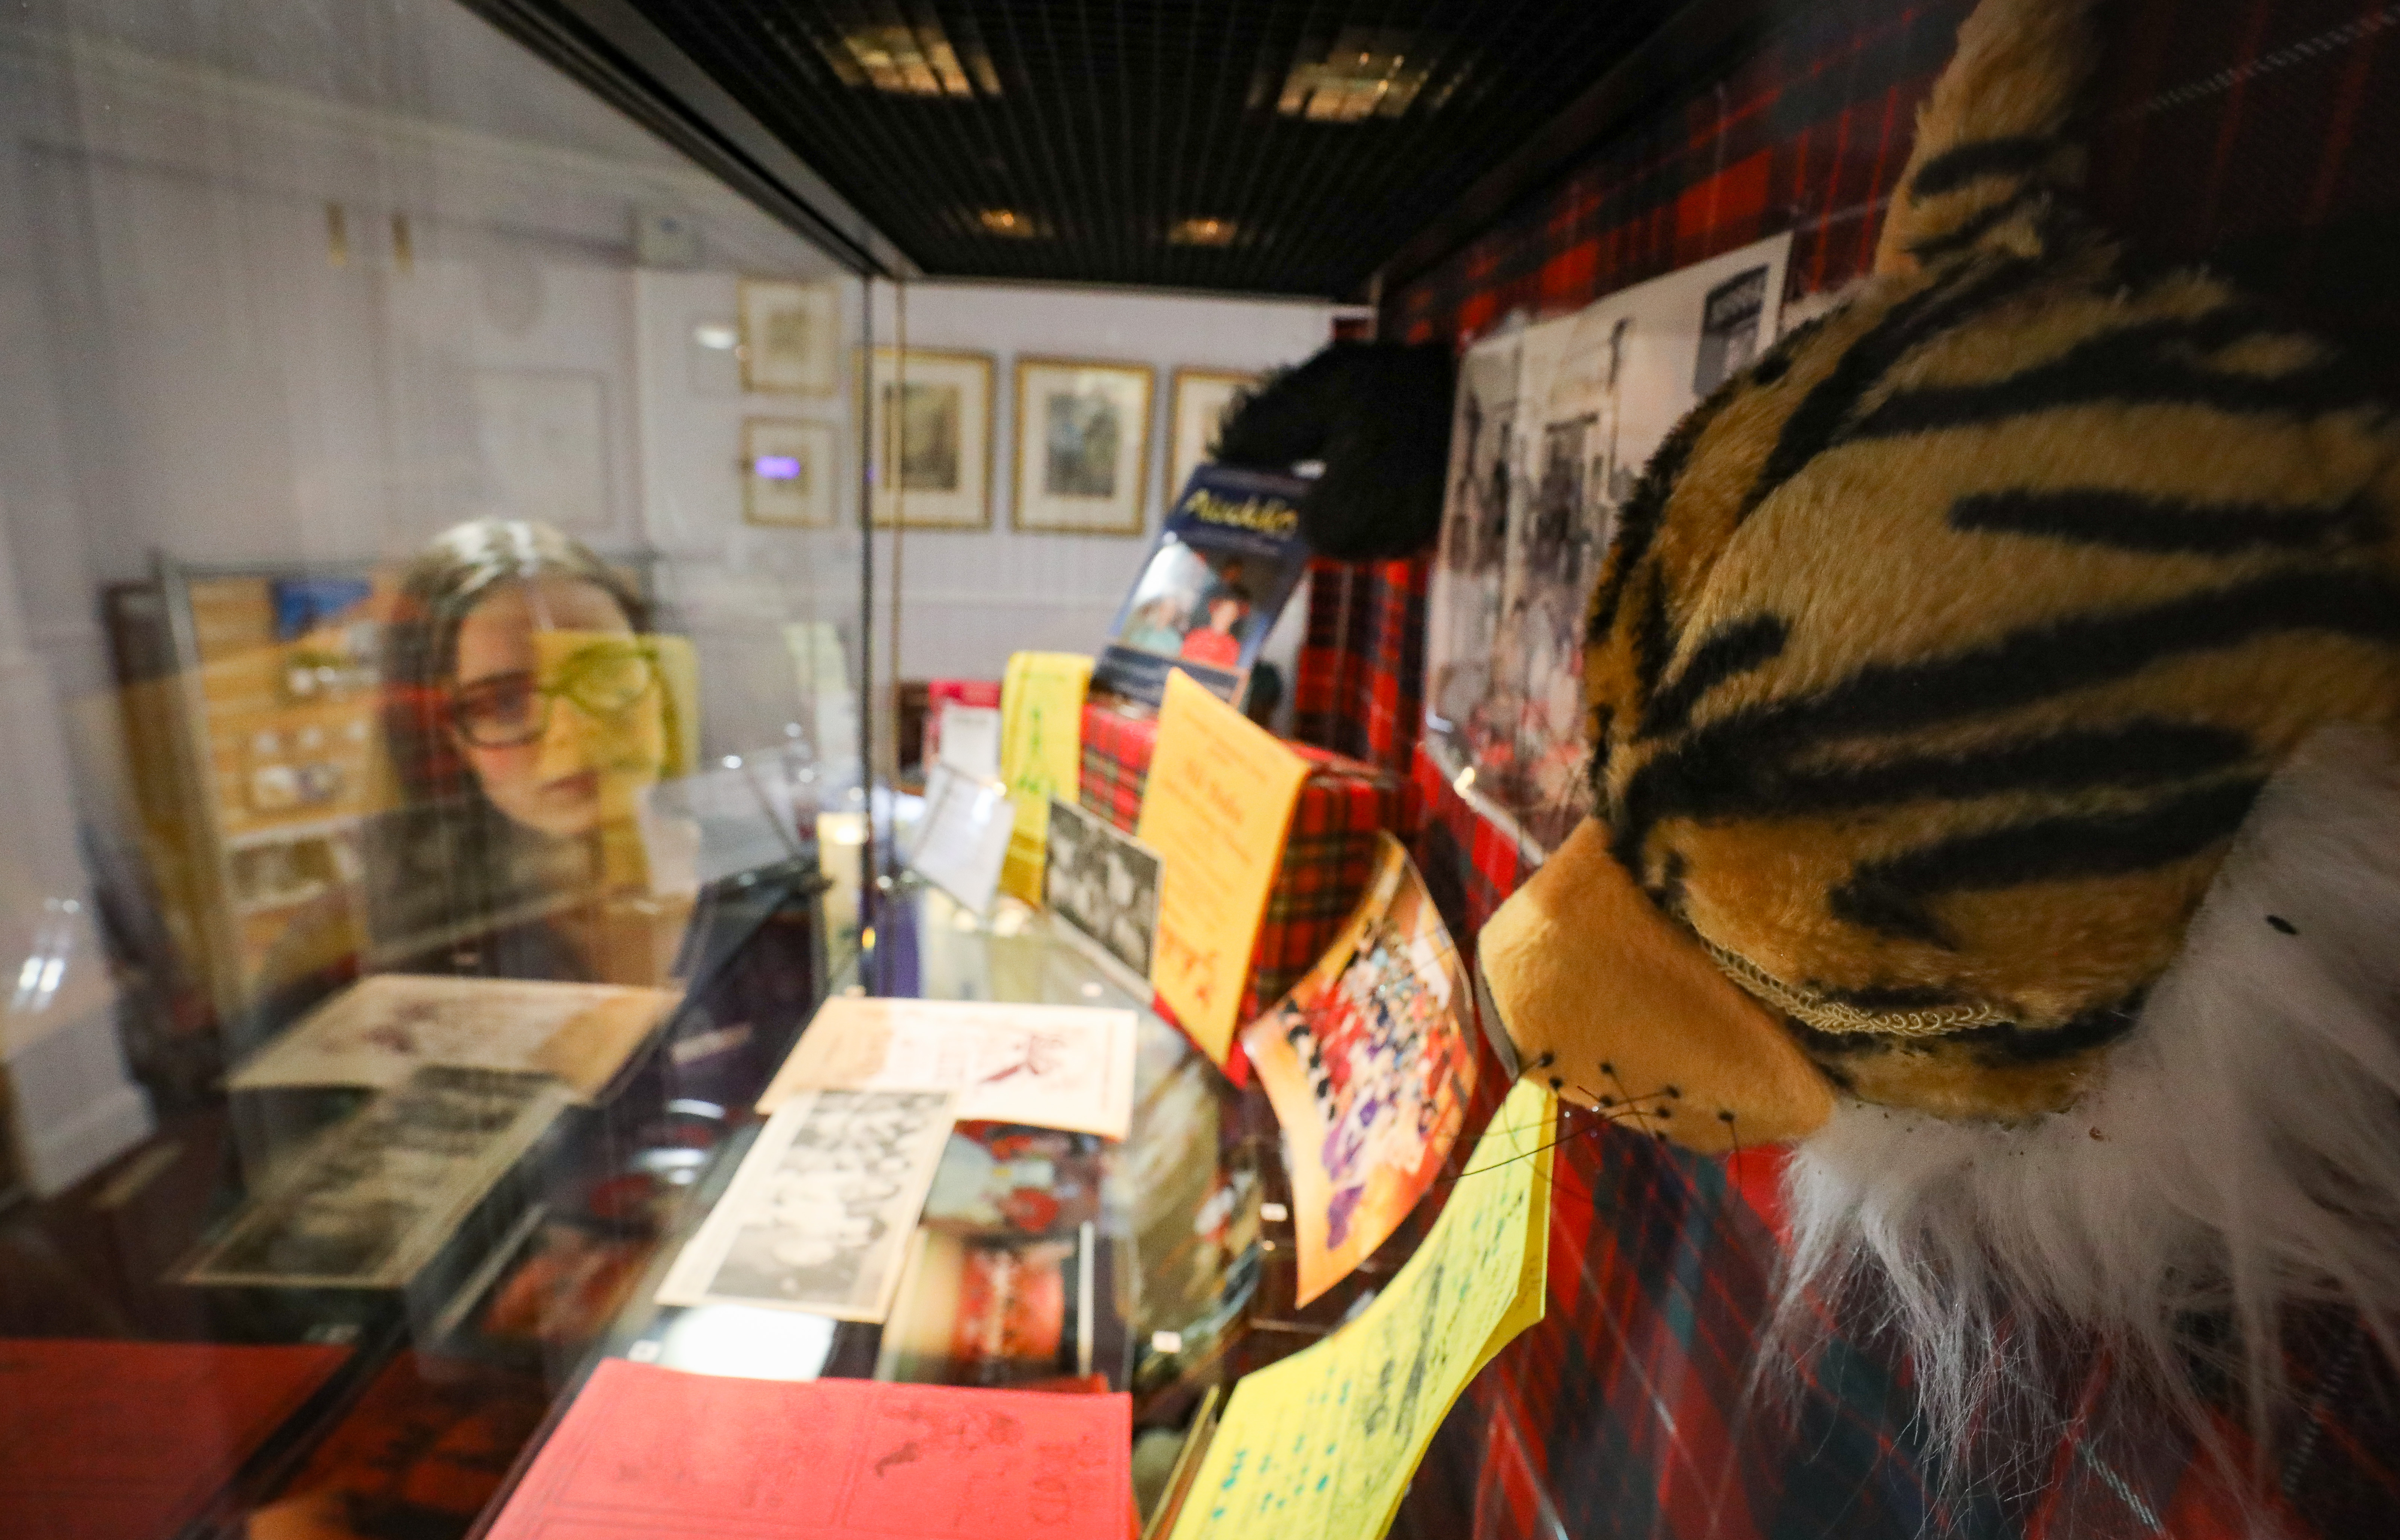 A colourful exhibition charting the history of pantomime has opened at Kirriemuir's Gateway to the Glens museum.